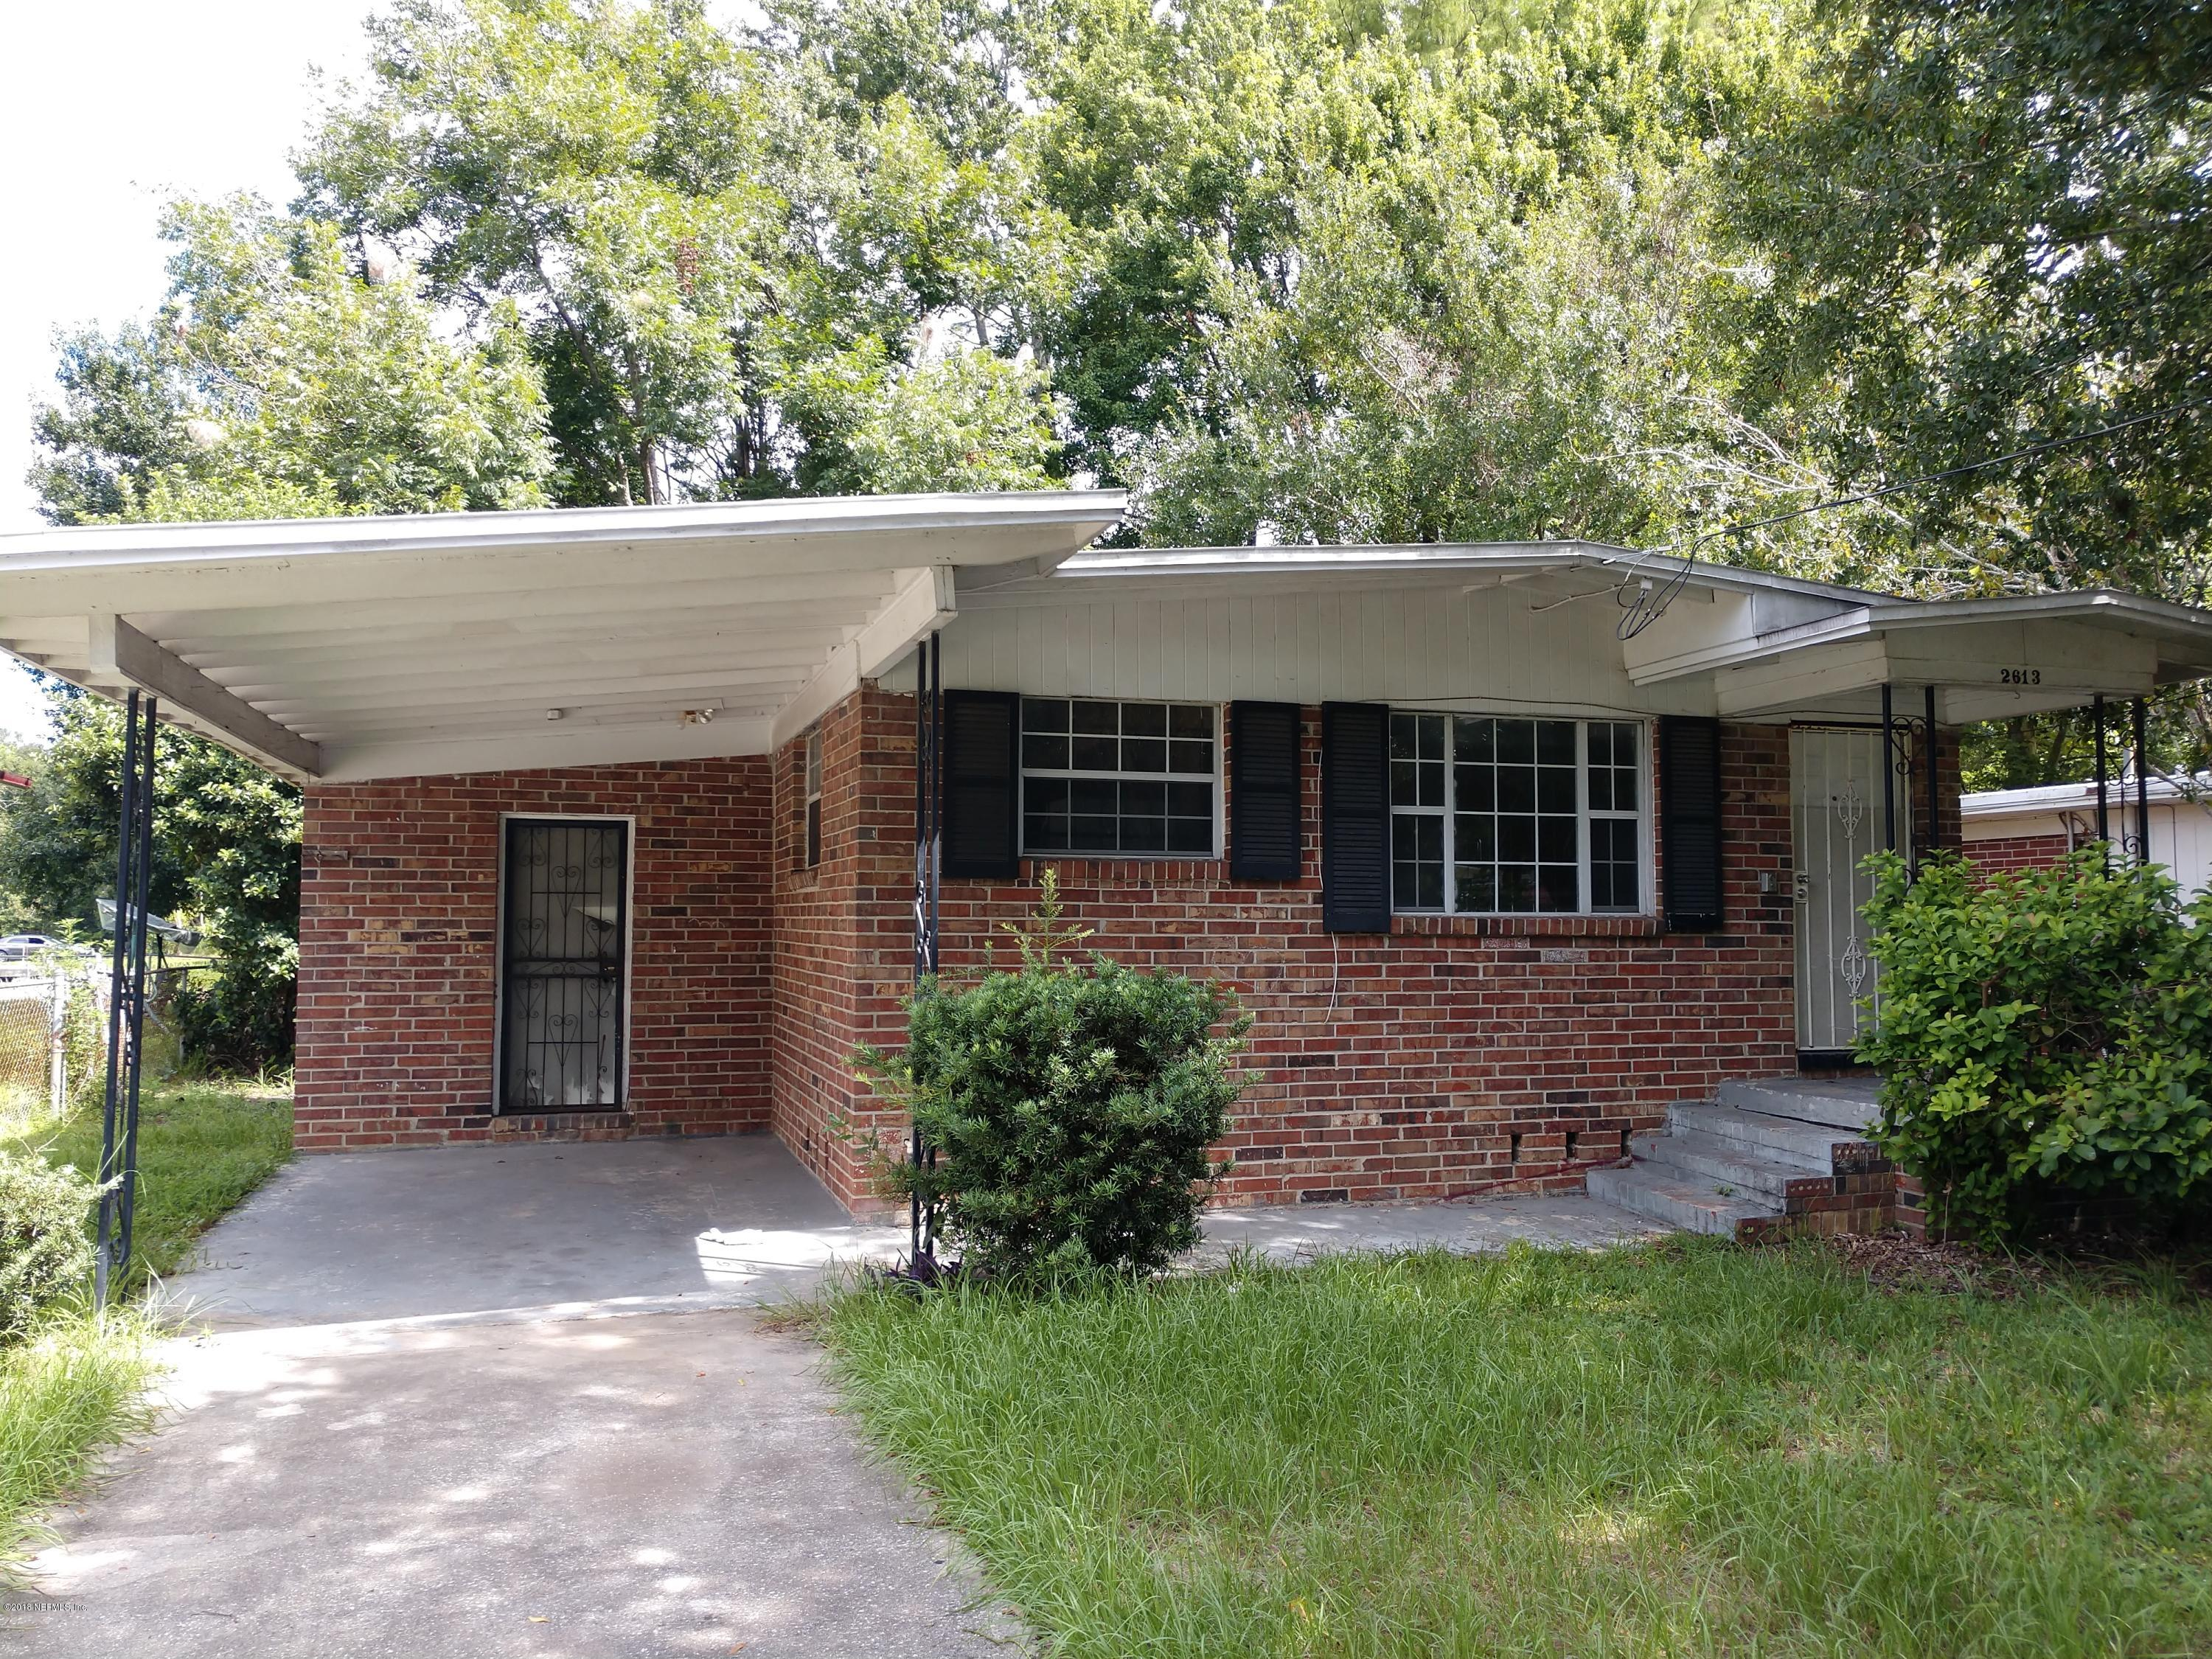 2613 28TH, JACKSONVILLE, FLORIDA 32209, 3 Bedrooms Bedrooms, ,1 BathroomBathrooms,Residential - single family,For sale,28TH,954858